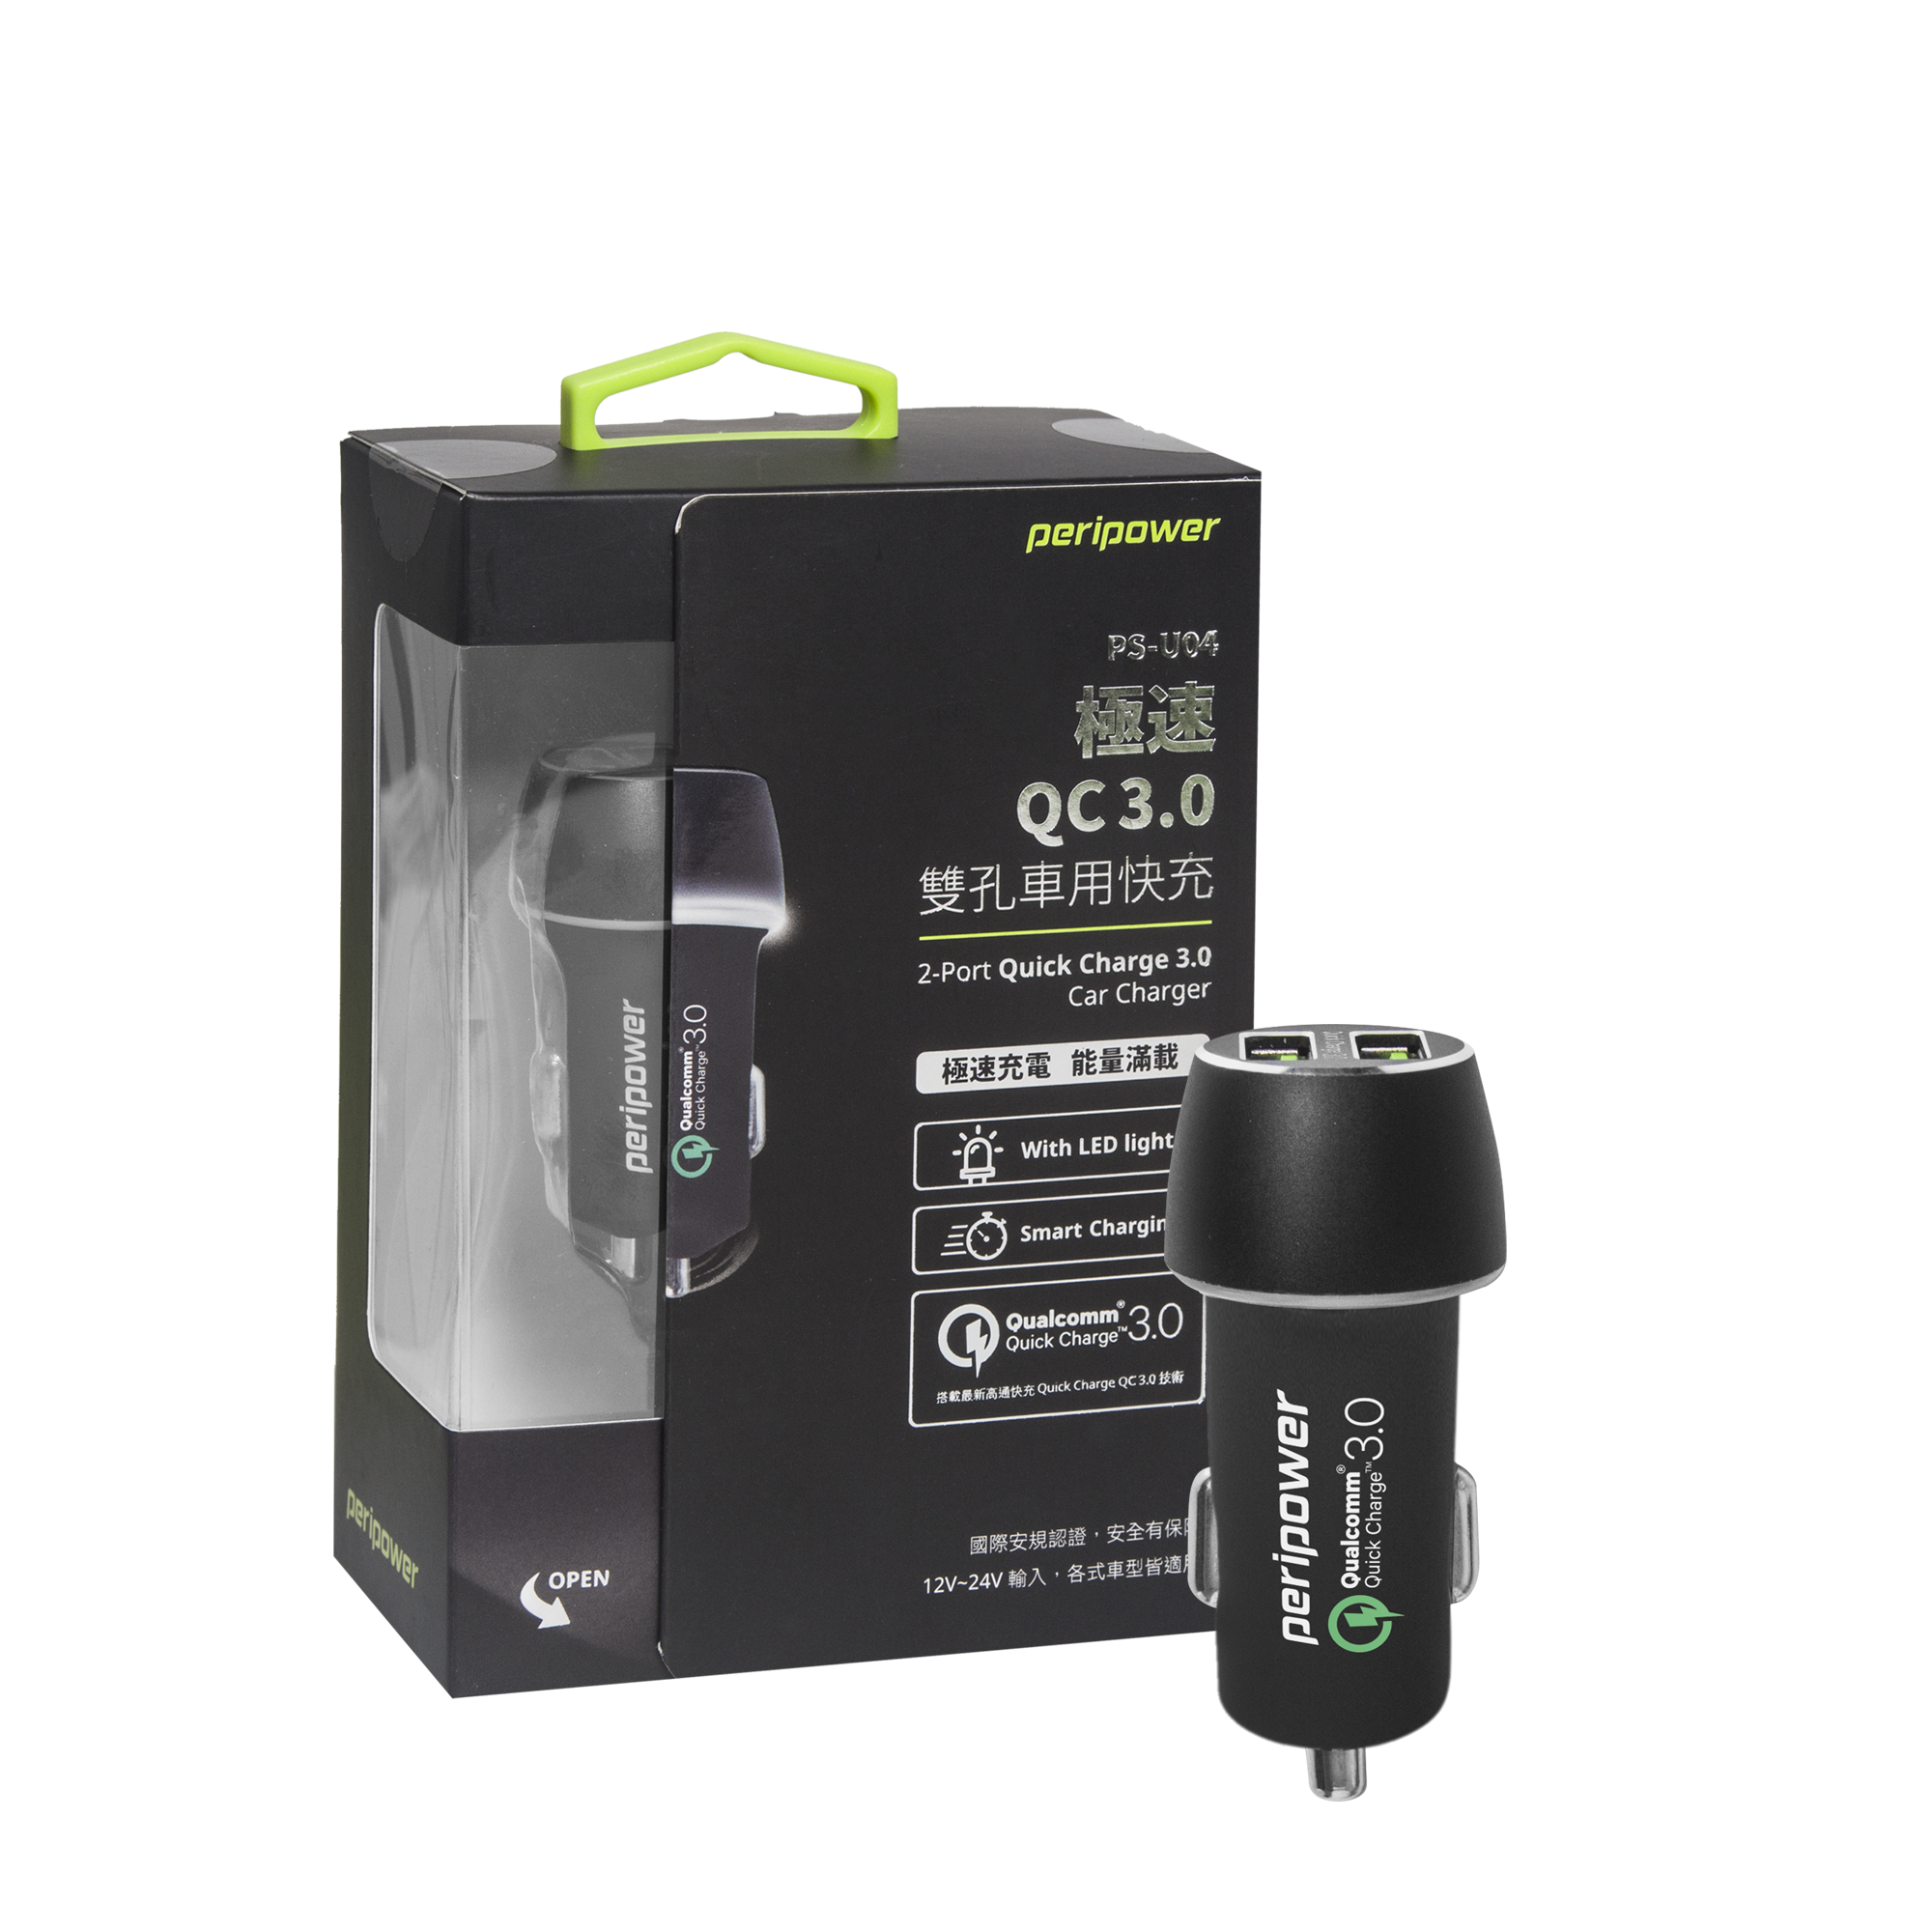 PS-U04 Qualcomm-certified Car Charger with 2 USB Ports